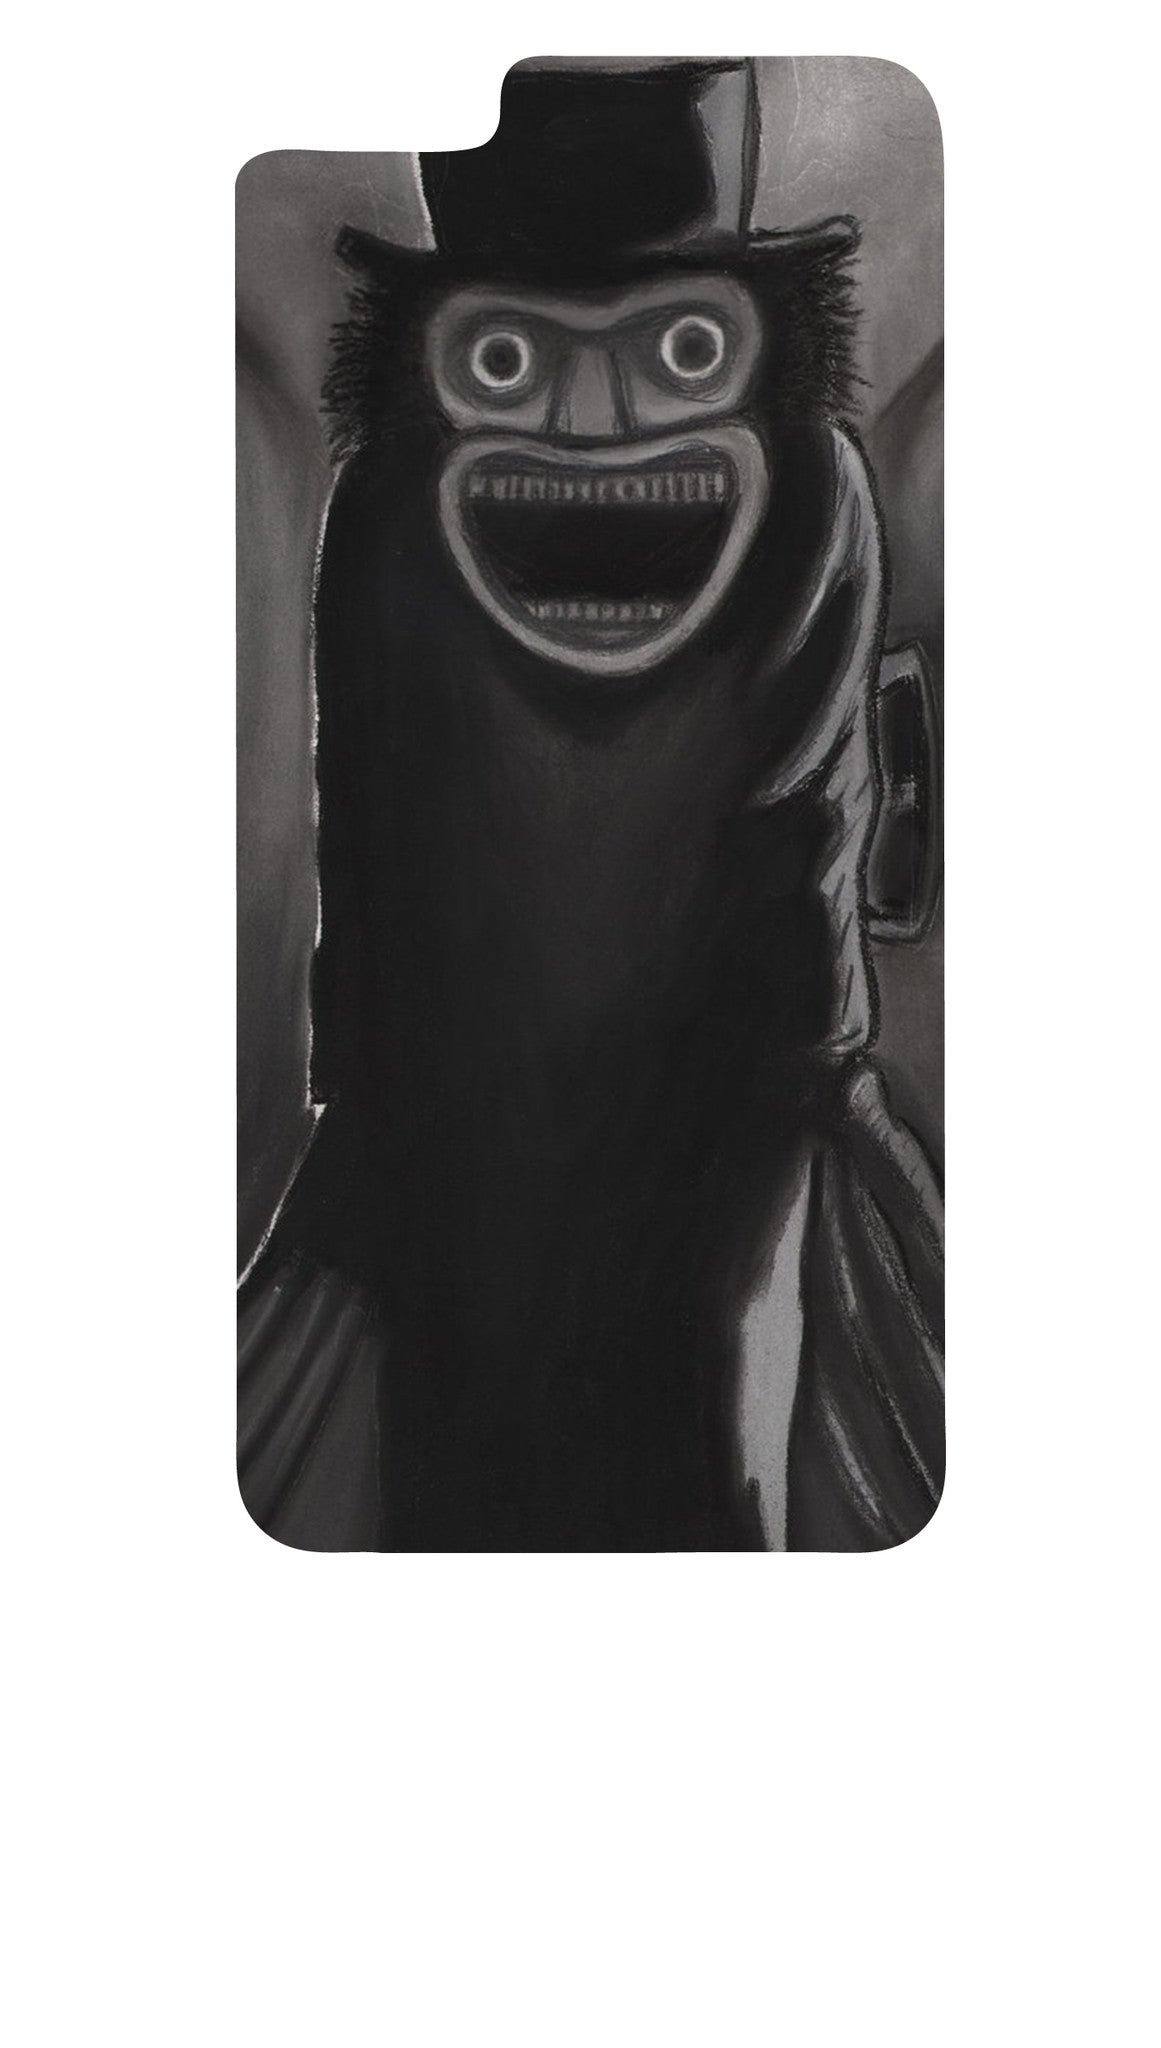 The Babadook Style A iPhone 6+/6S+ Case